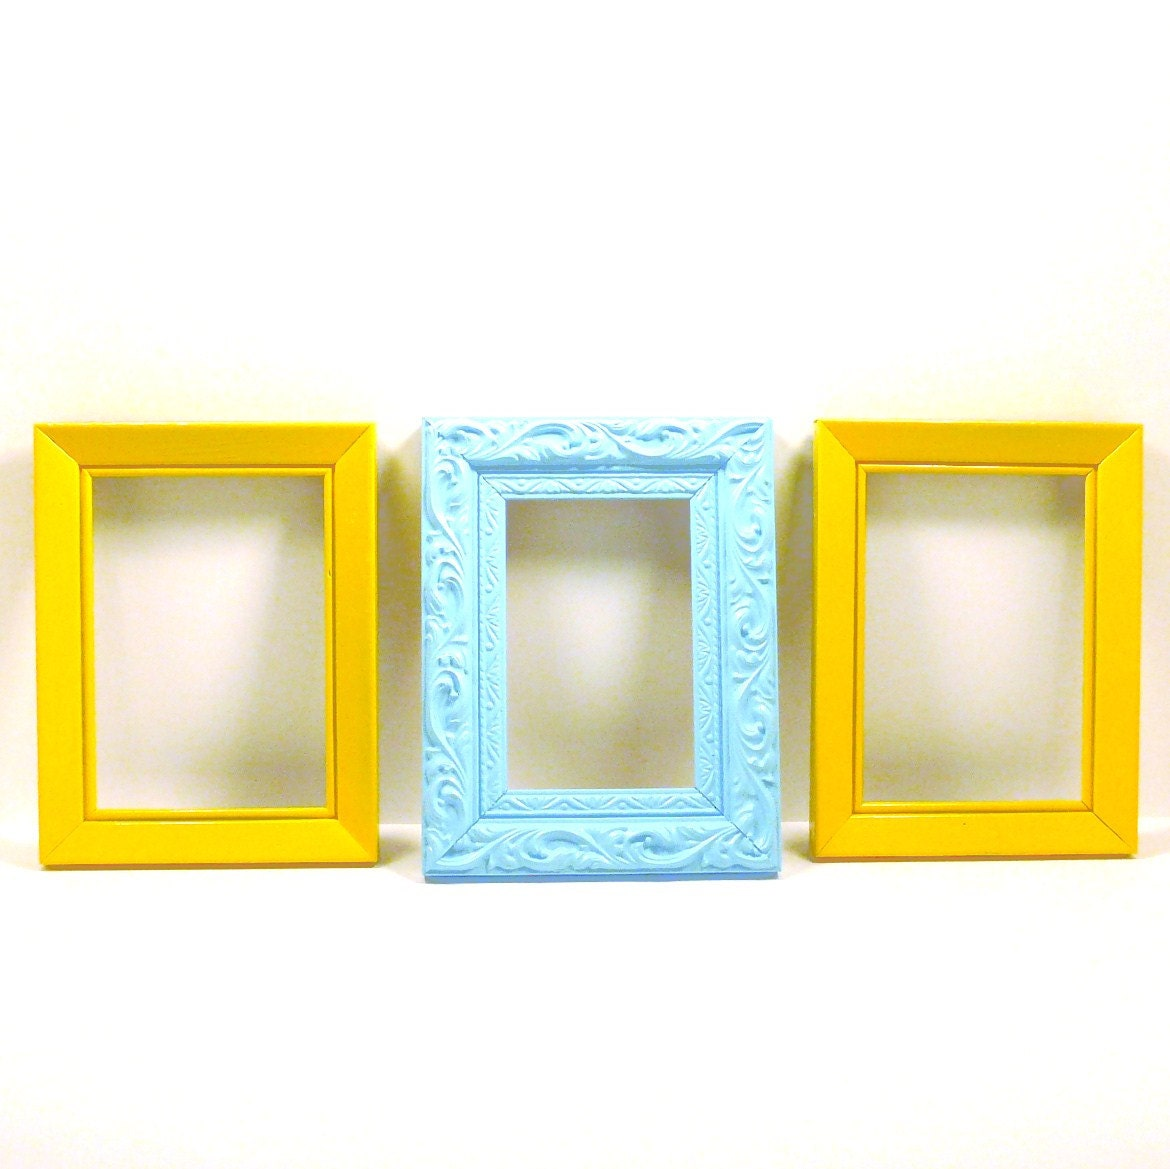 bright frame set painted frames yellow aqua picture by nashpop